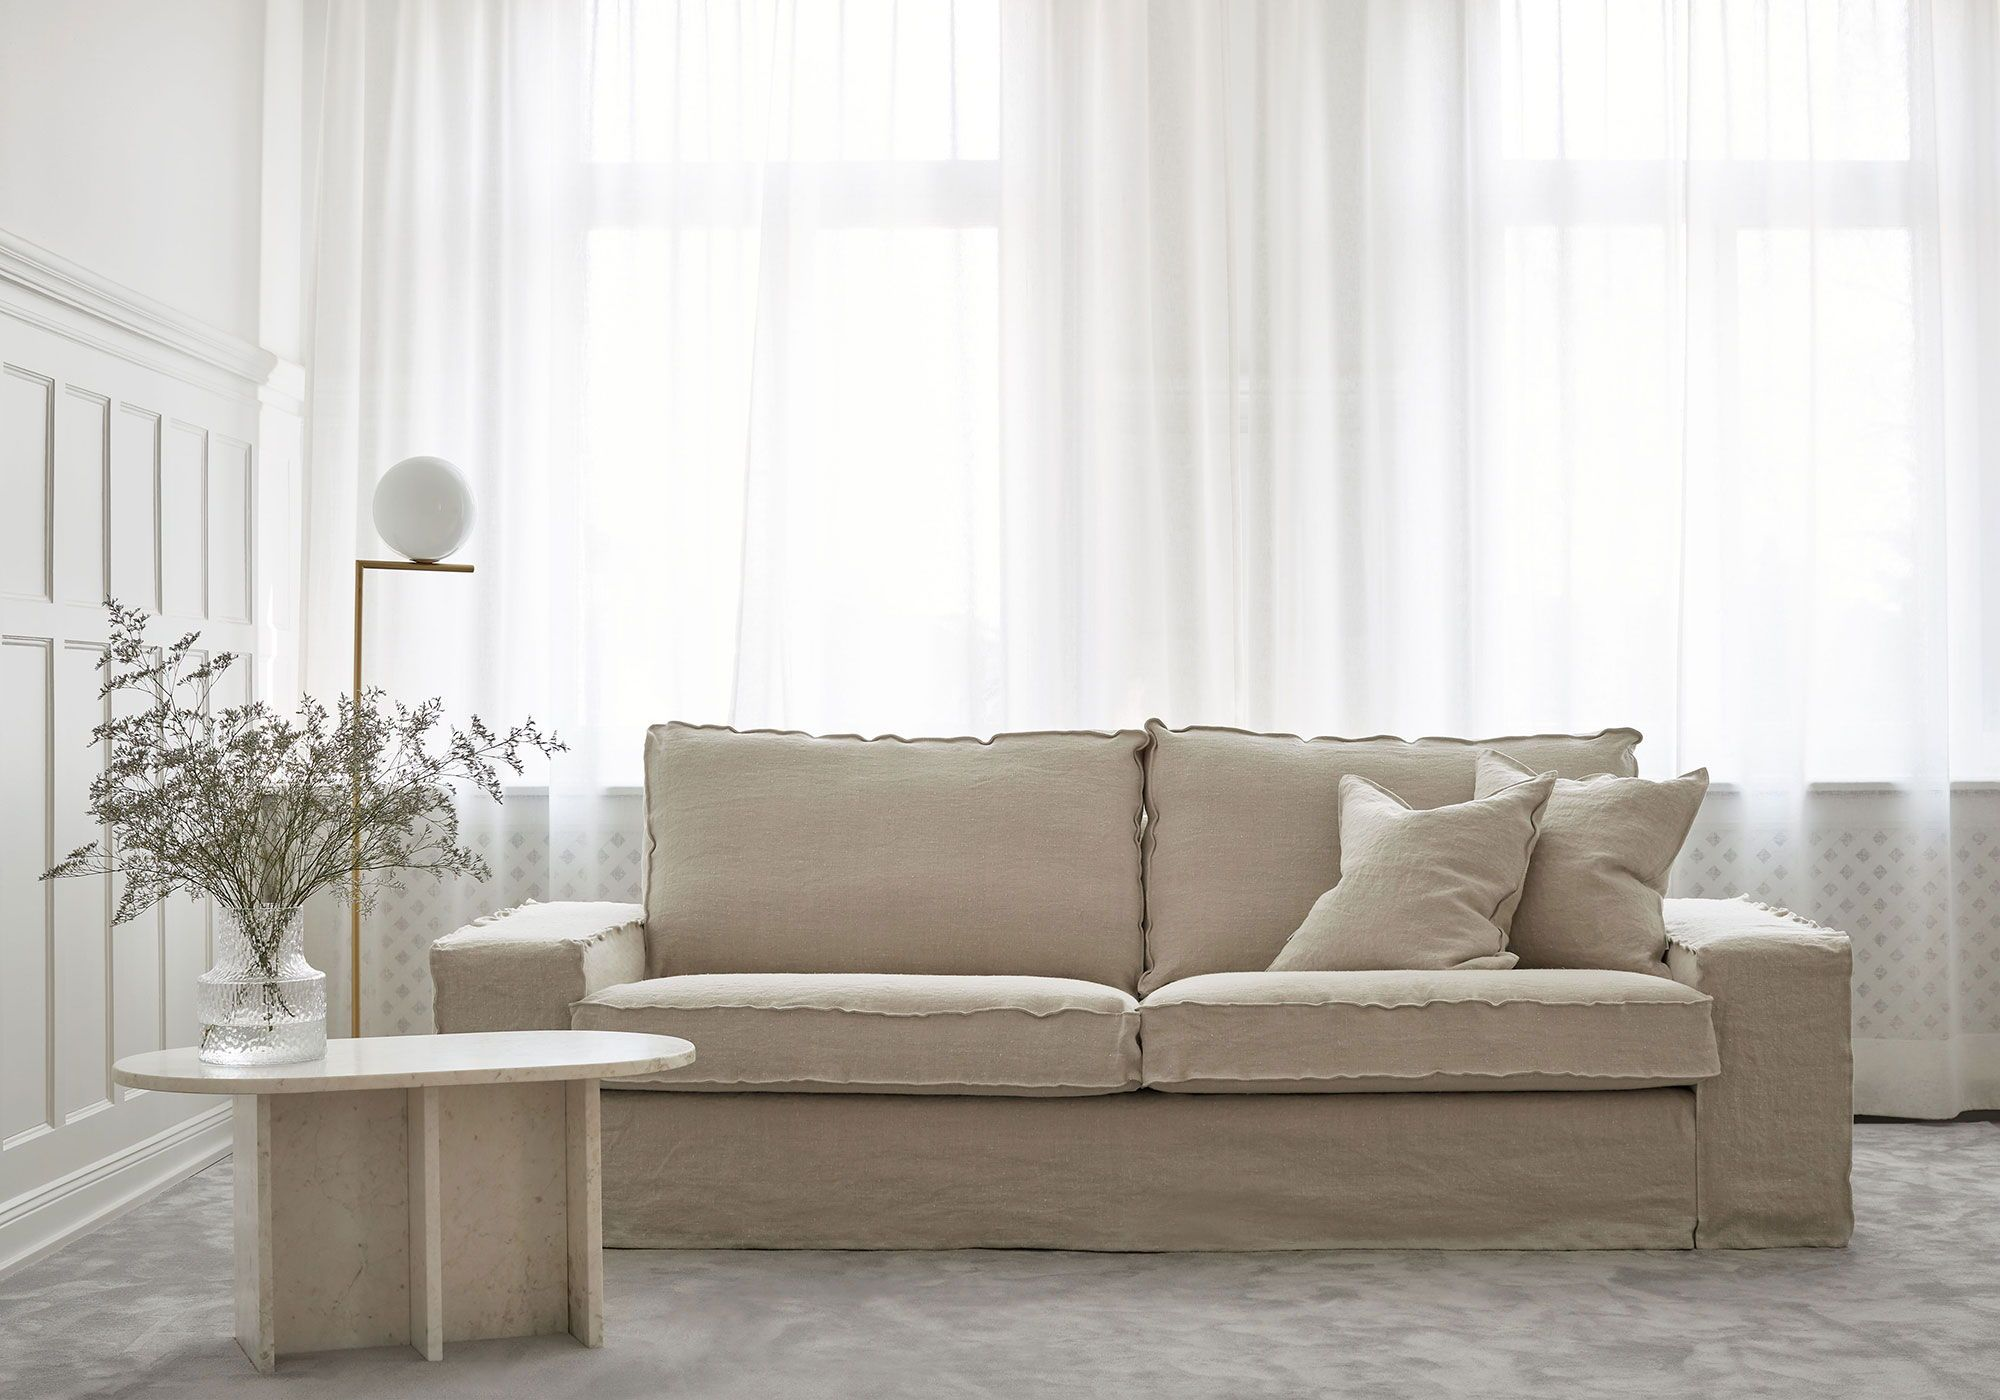 The Ikea Kivik Sofa Is Characterised By